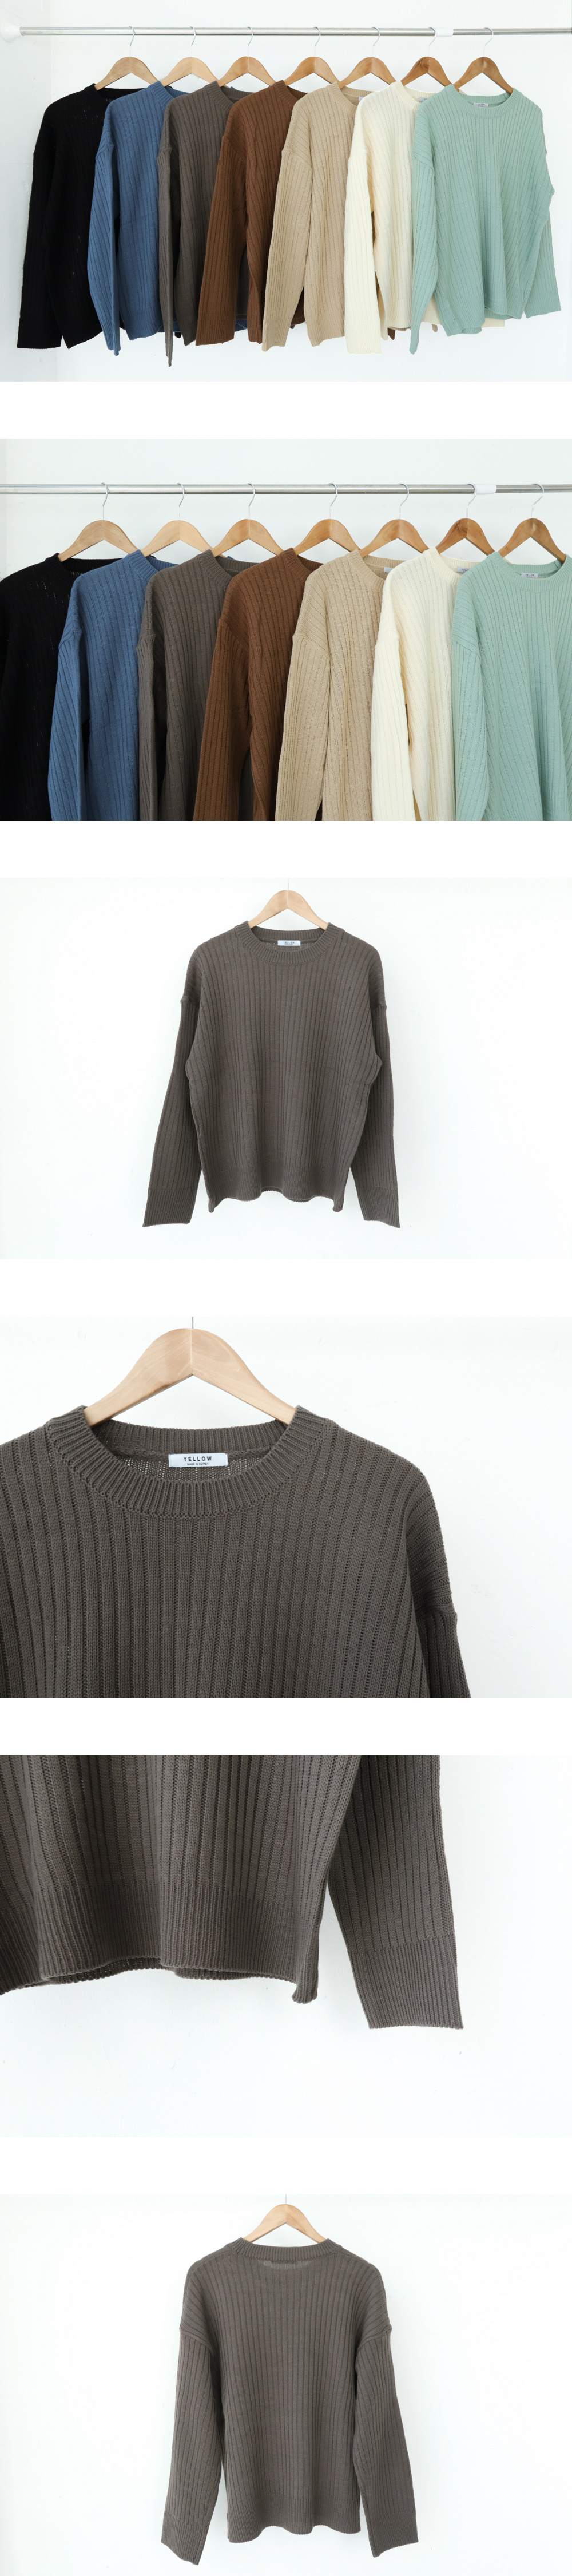 Half ribbed round knit